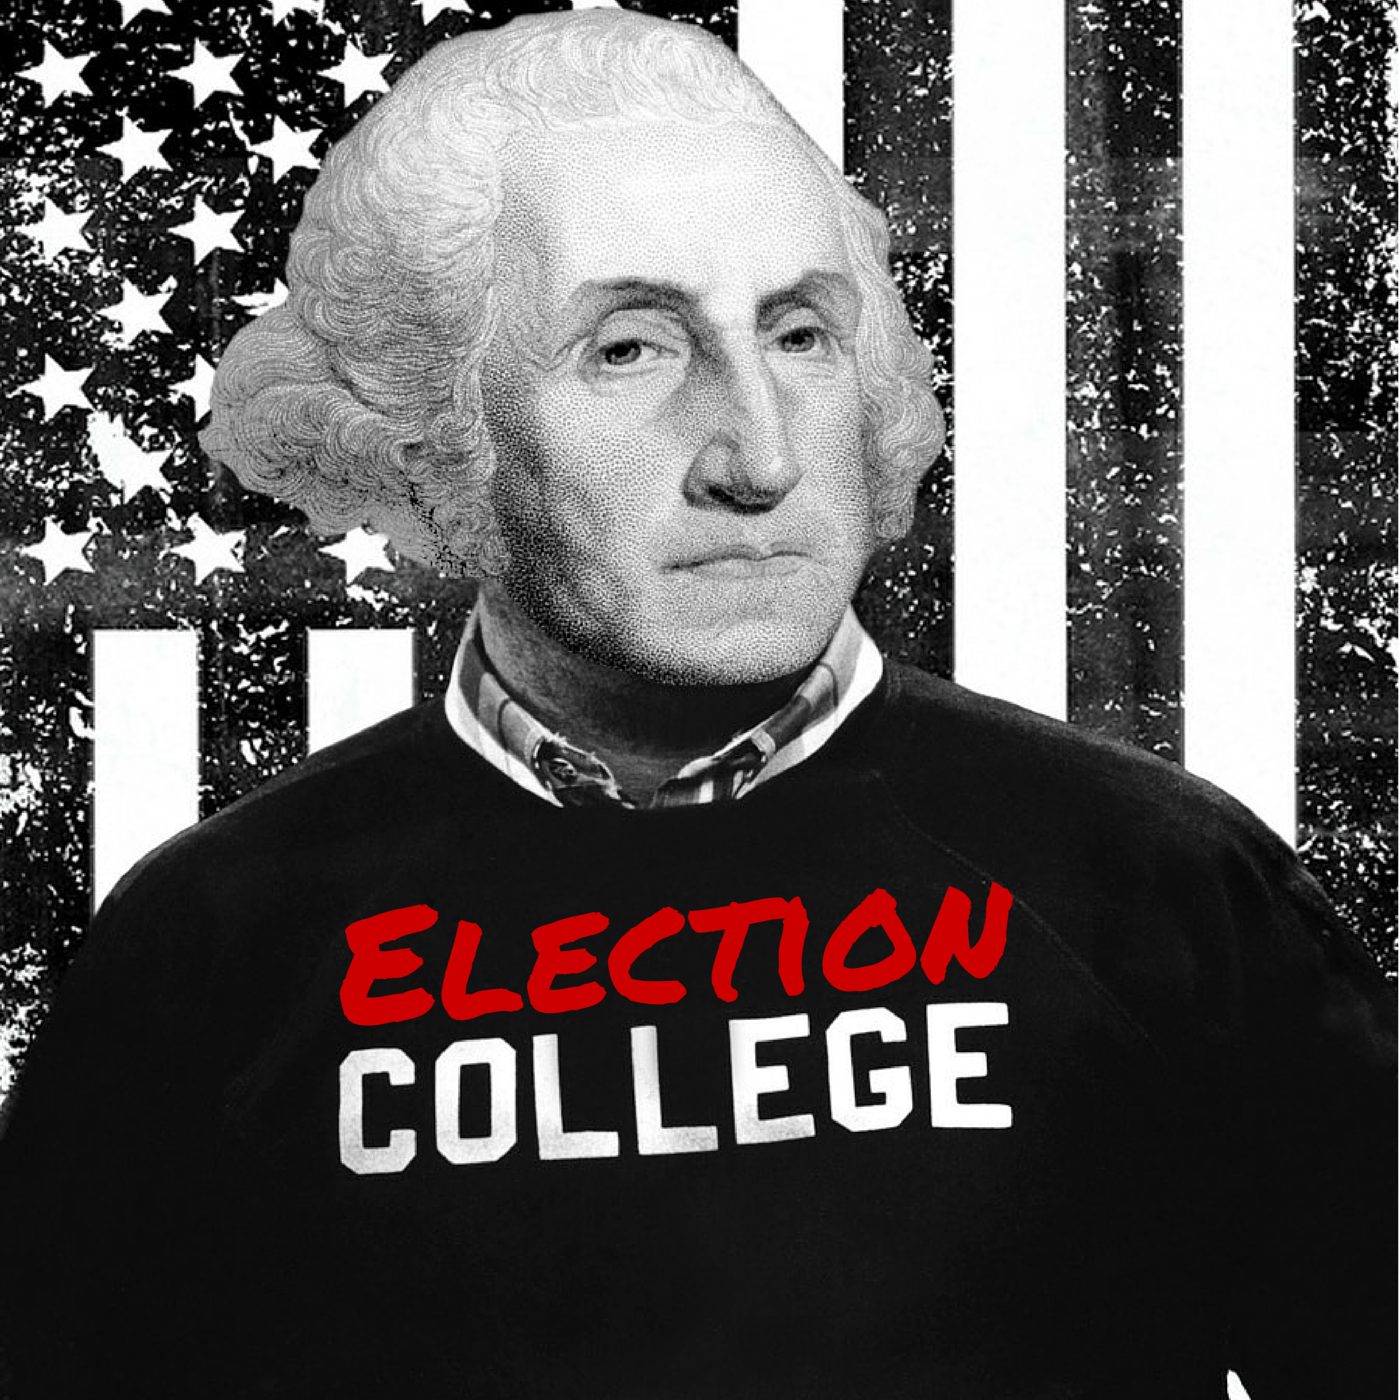 The Vice President | Episode #117 | Election College: United States Presidential Election History